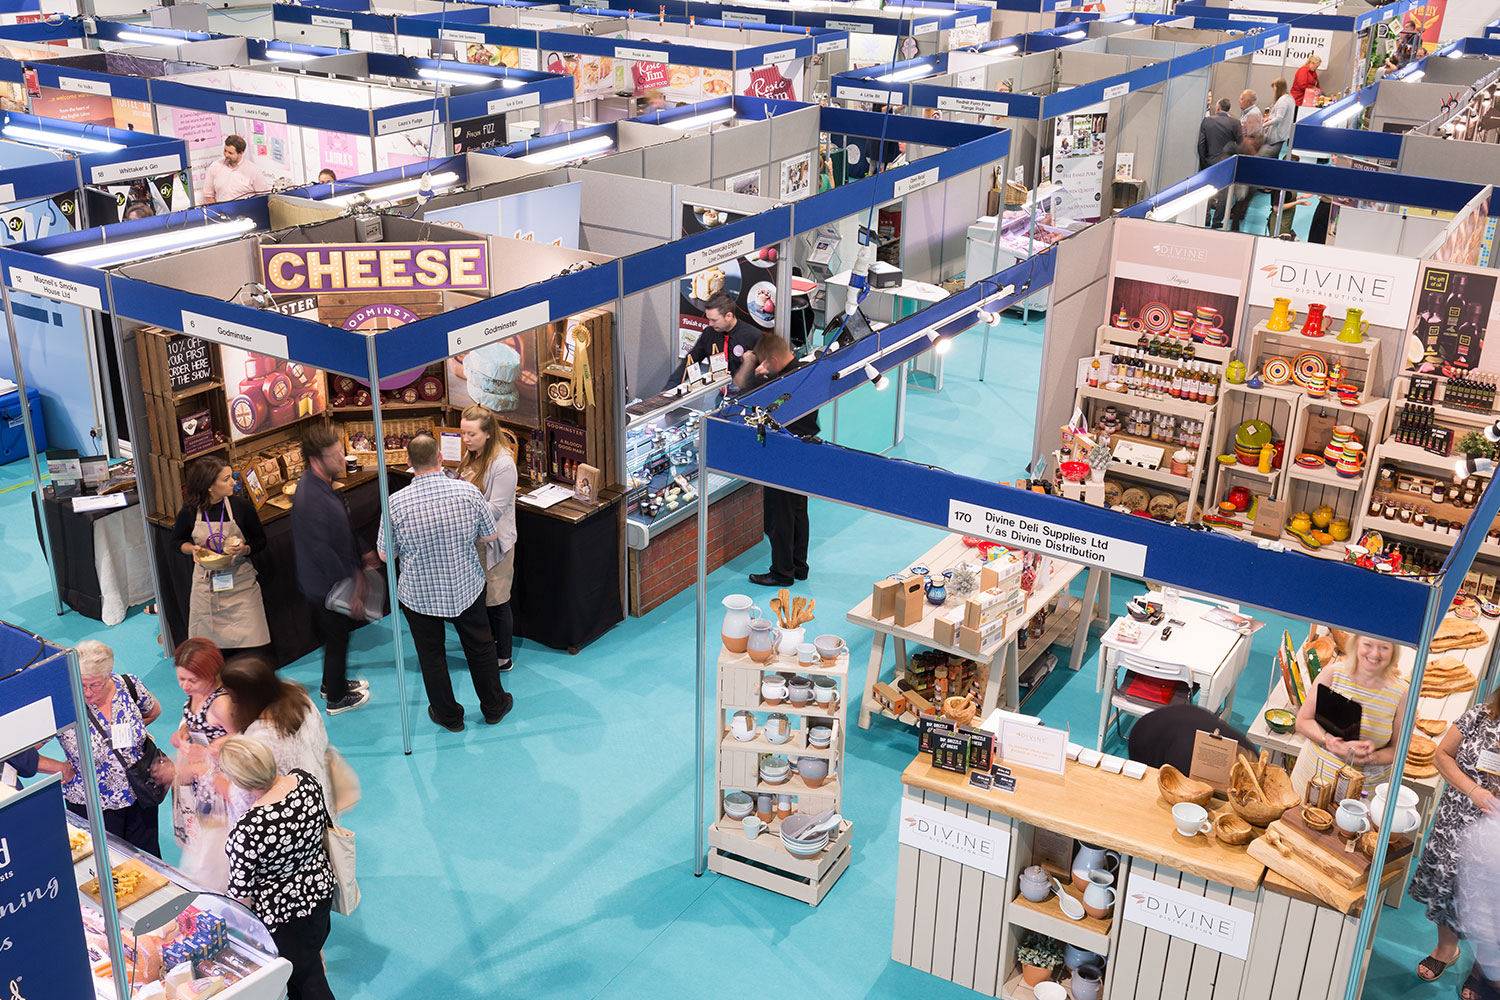 Exhibitions in Hall 2 at the Yorkshire Event Centre